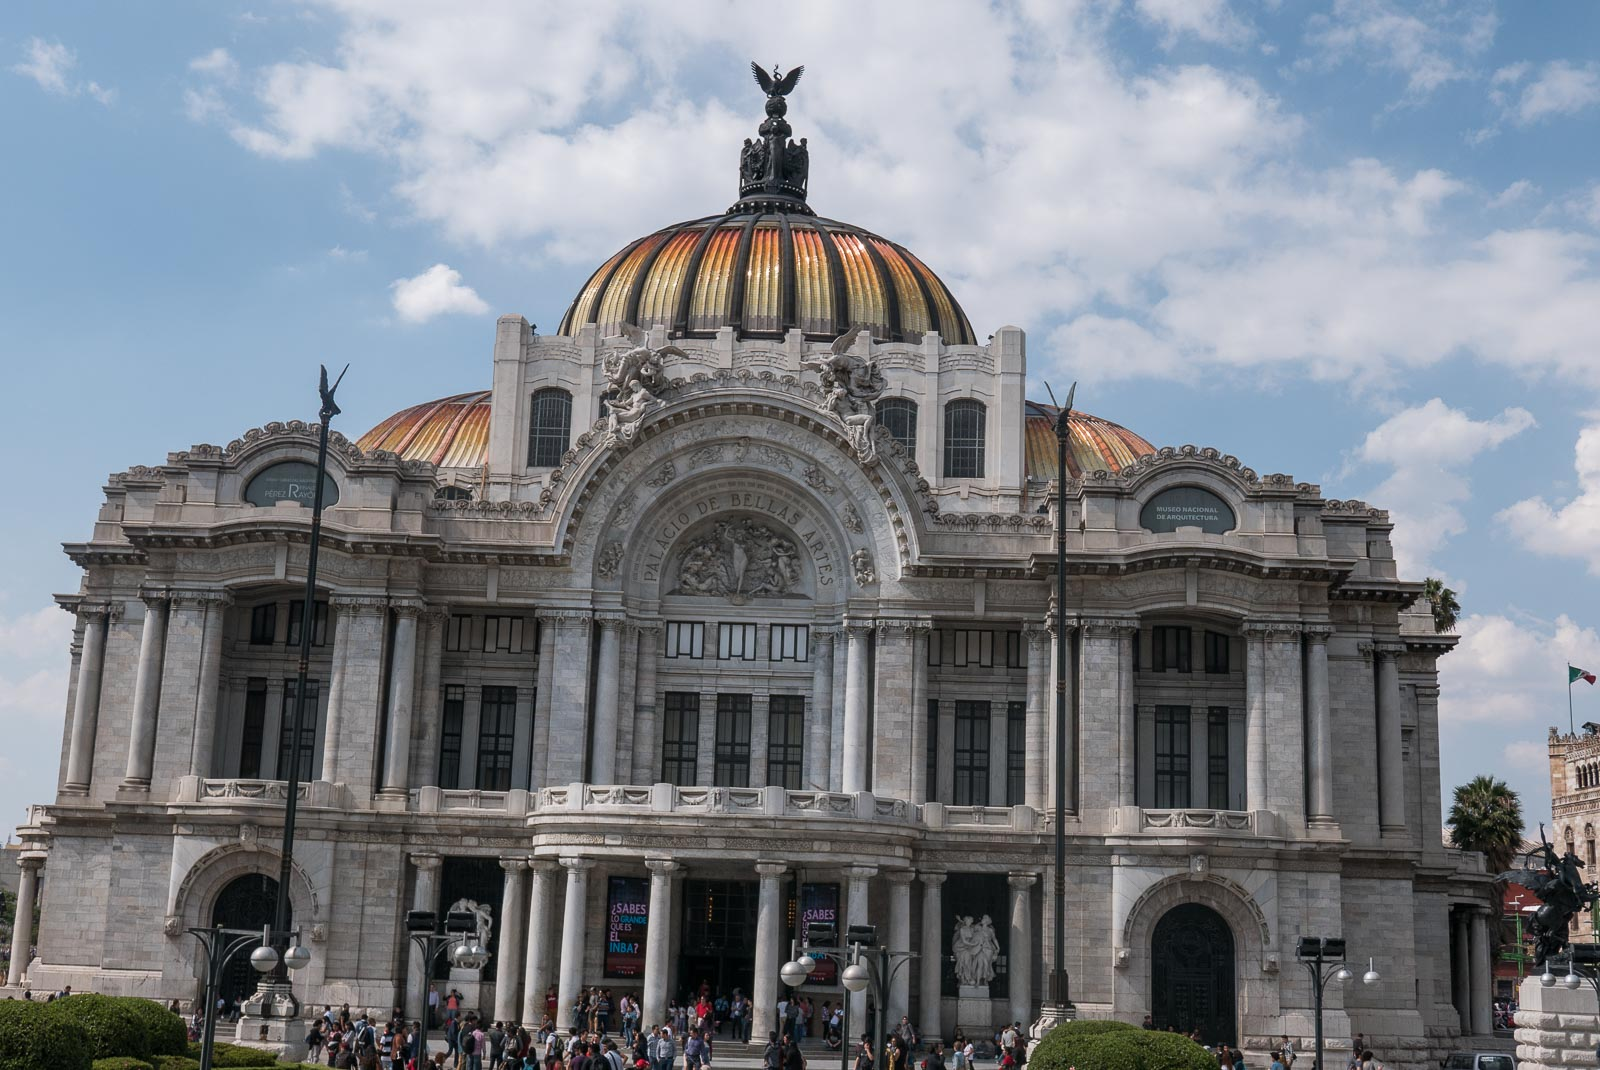 The facade of the Palacio de Bellas Artes building in Mexico City.